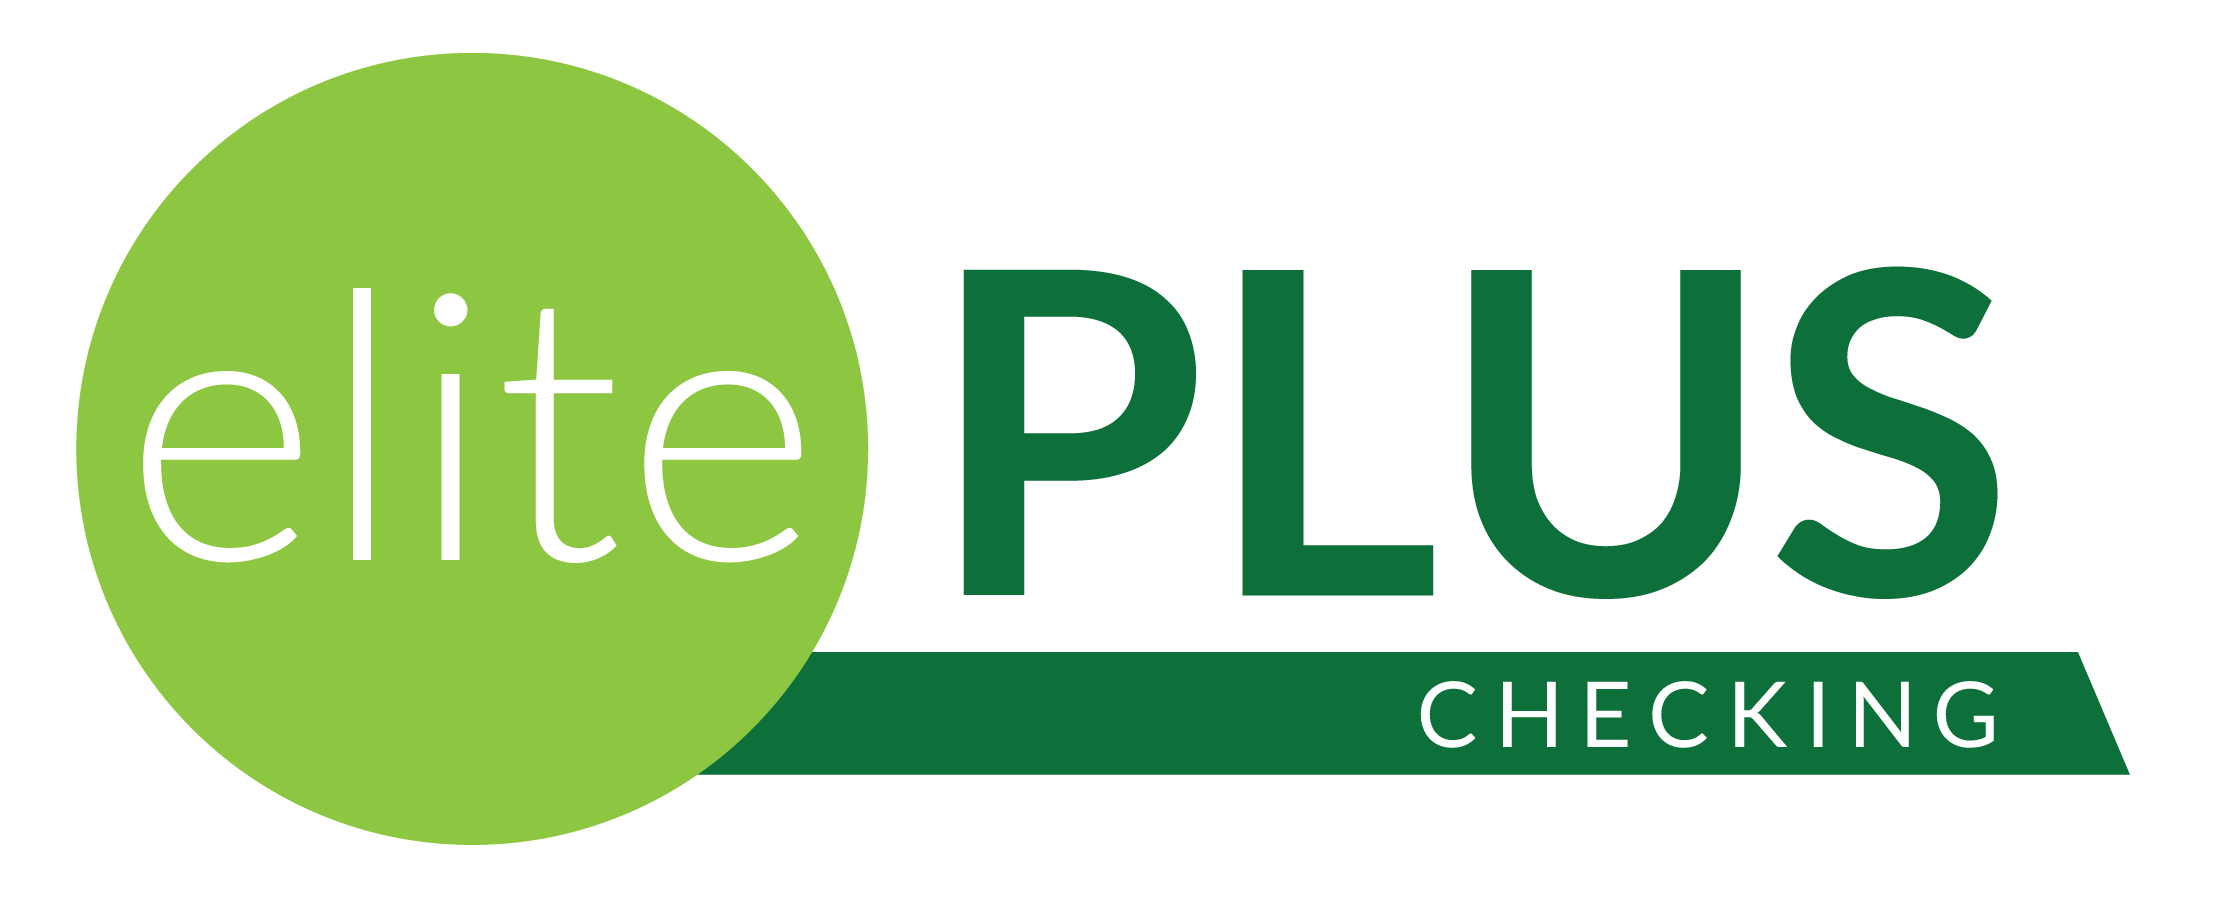 Elite Plus Checking Logo